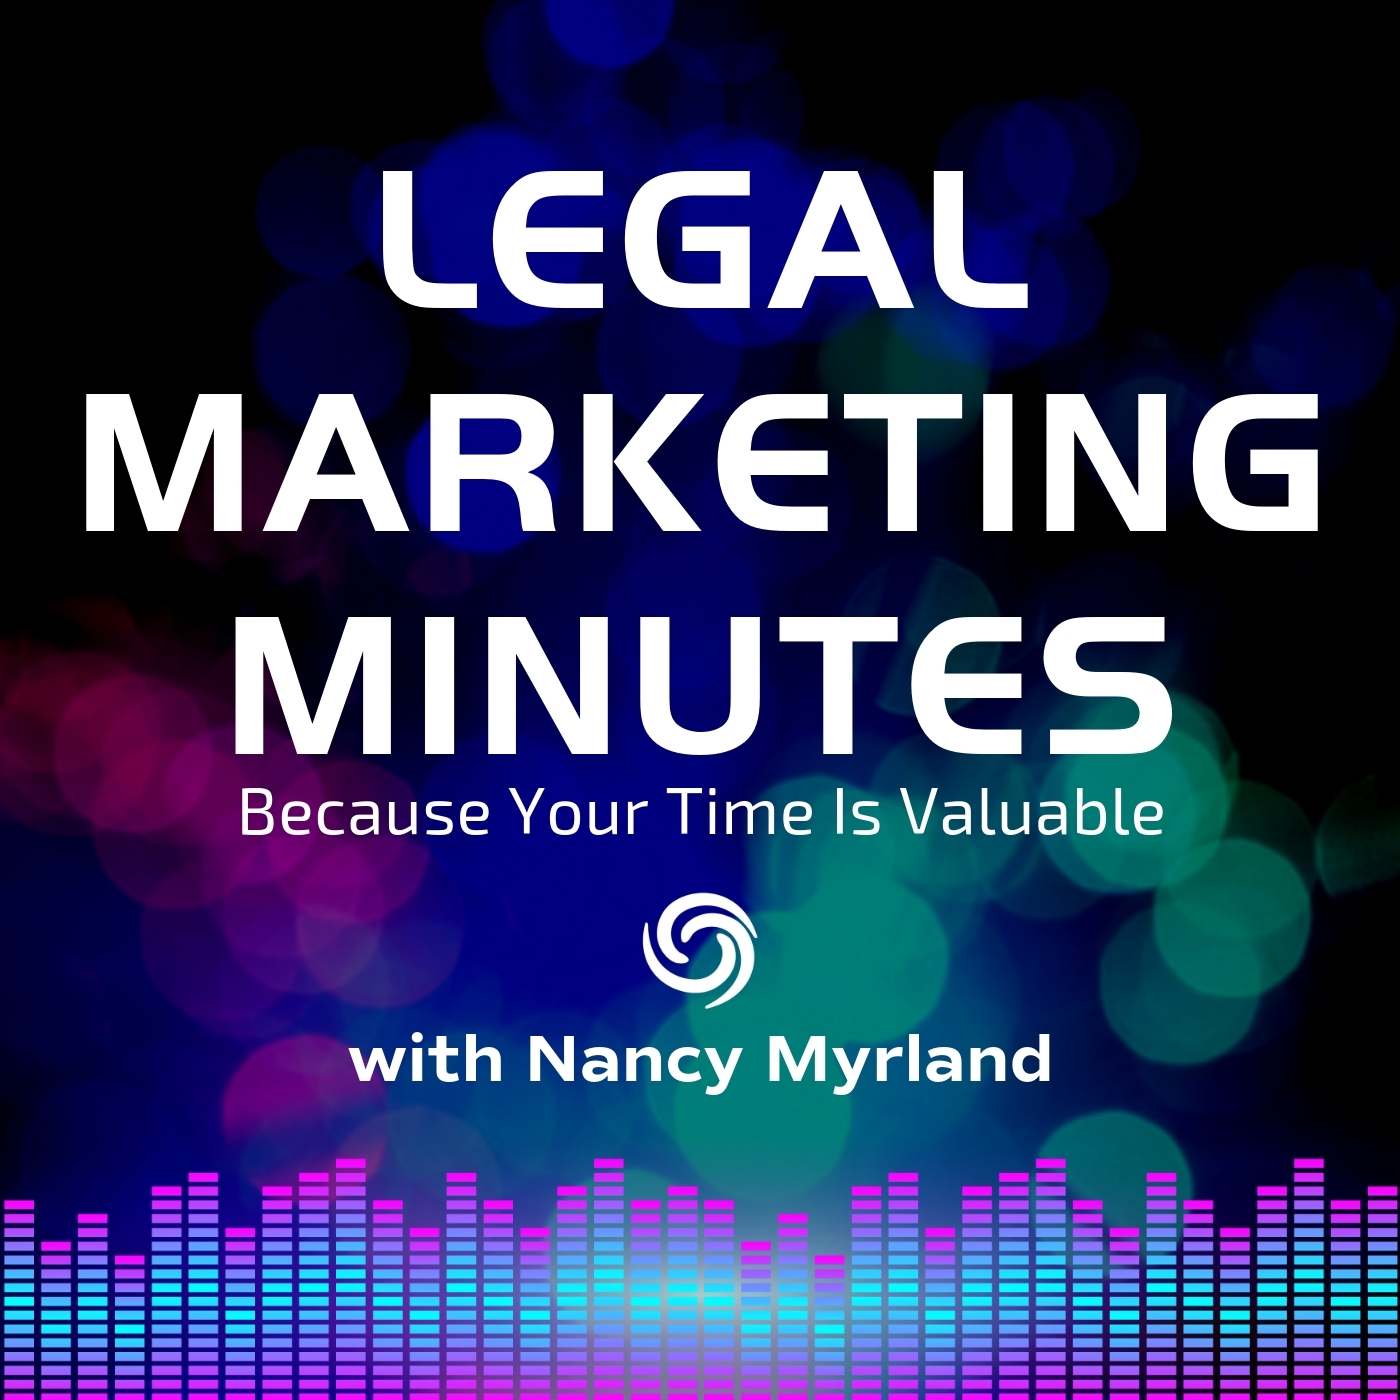 035: Lawyers, This Approach Can Backfire On You show art